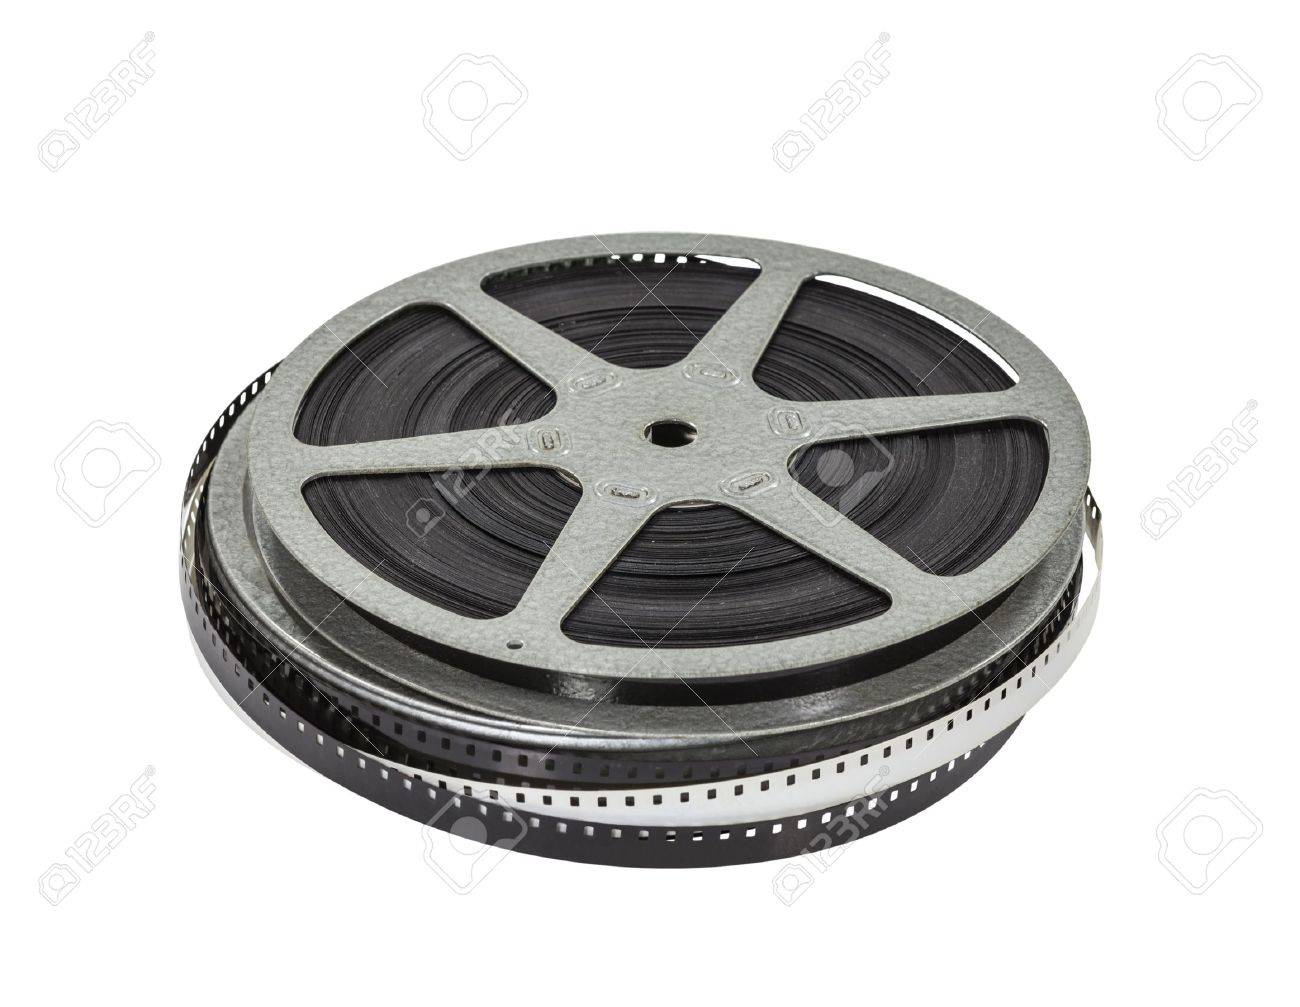 Vintage Home Movie Film Reel And Can Stock Photo Picture And